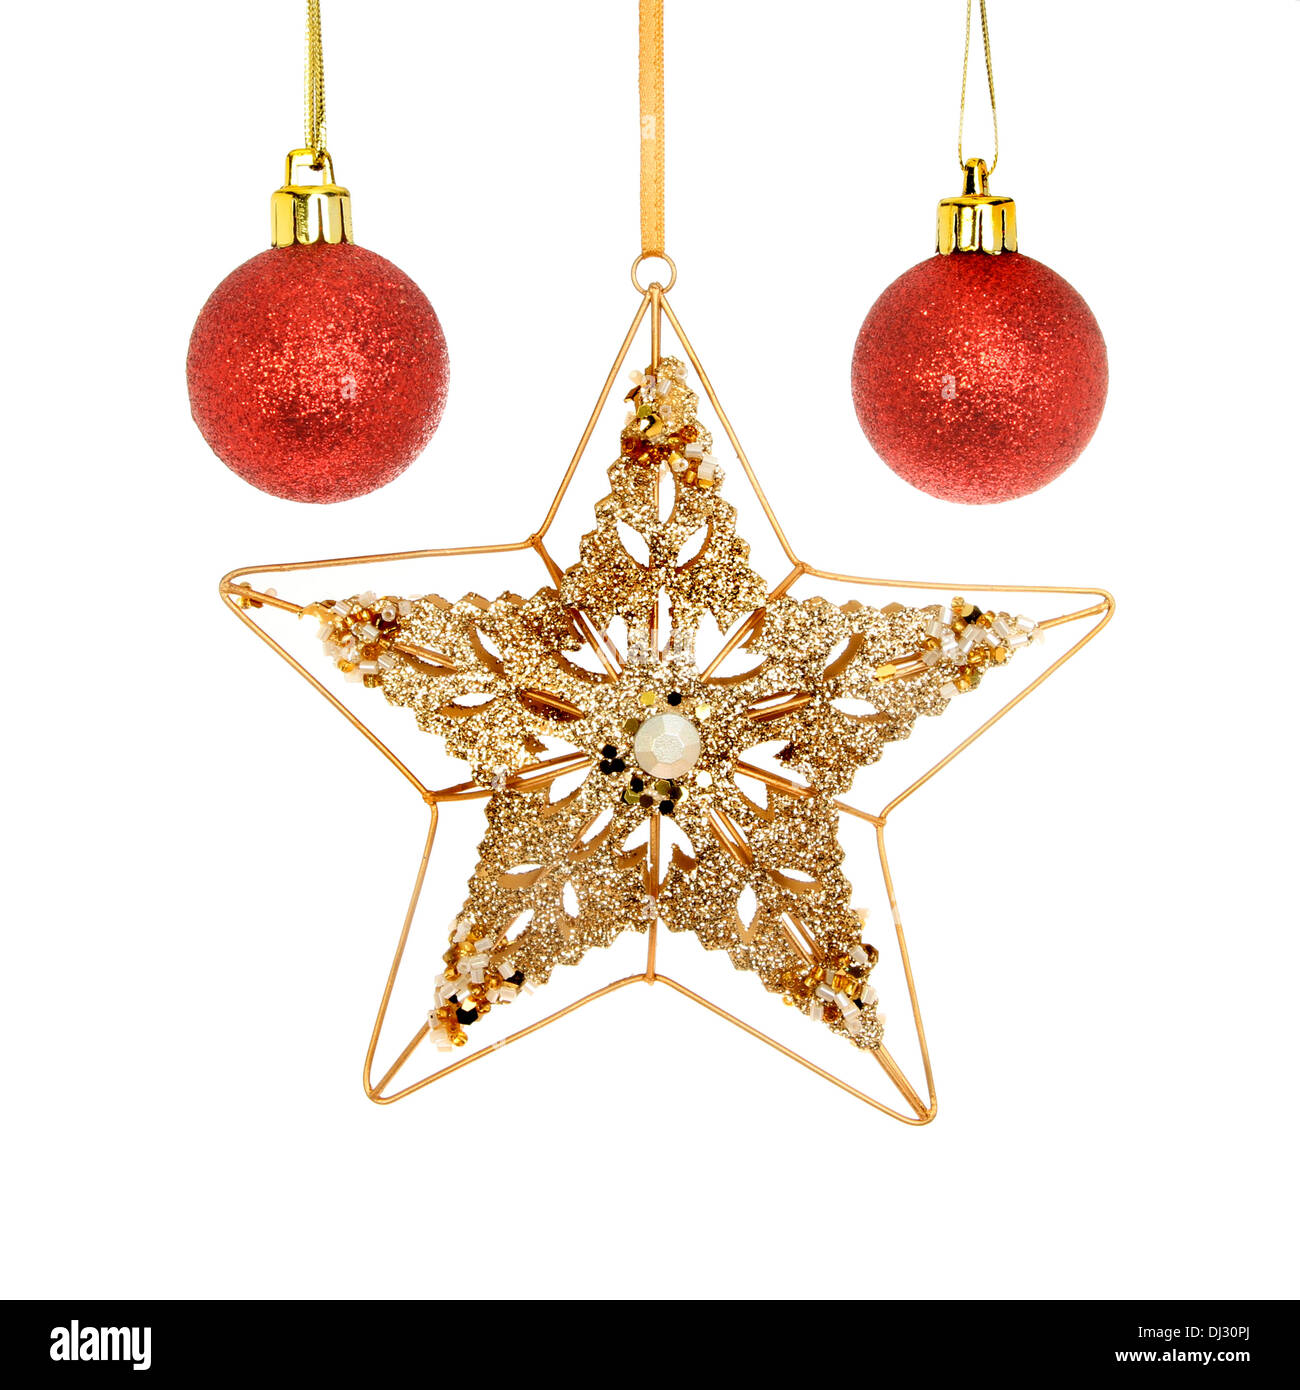 6dbca741b201 Gold, glitter and jeweled Christmas star with red baubles isolated against  white